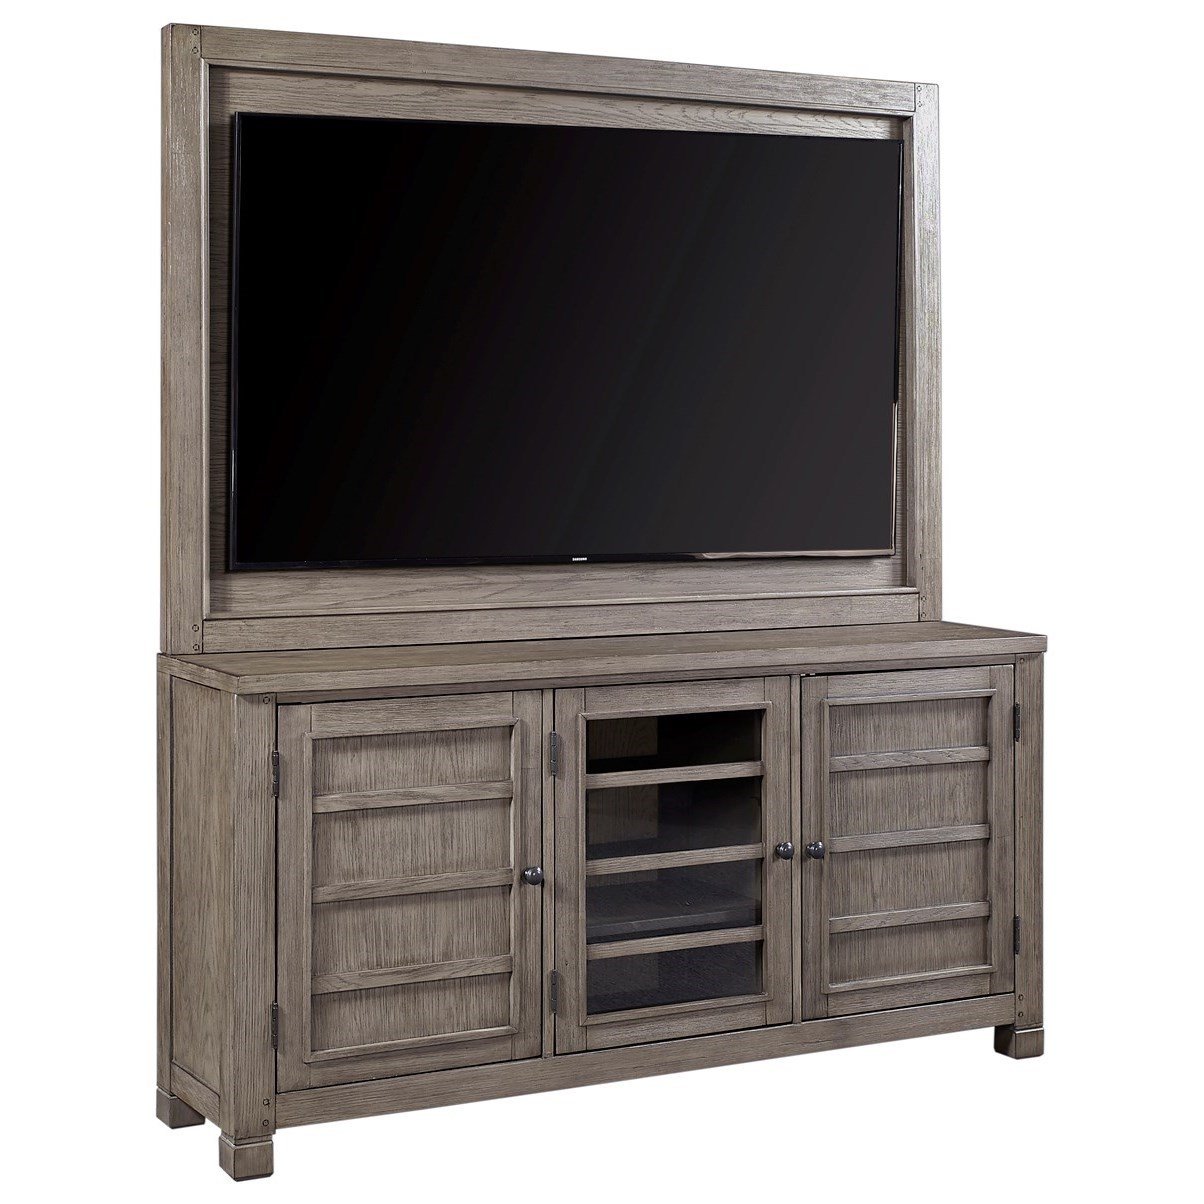 """Tucker 65"""" Console with TV Backer by Aspenhome at Walker's Furniture"""